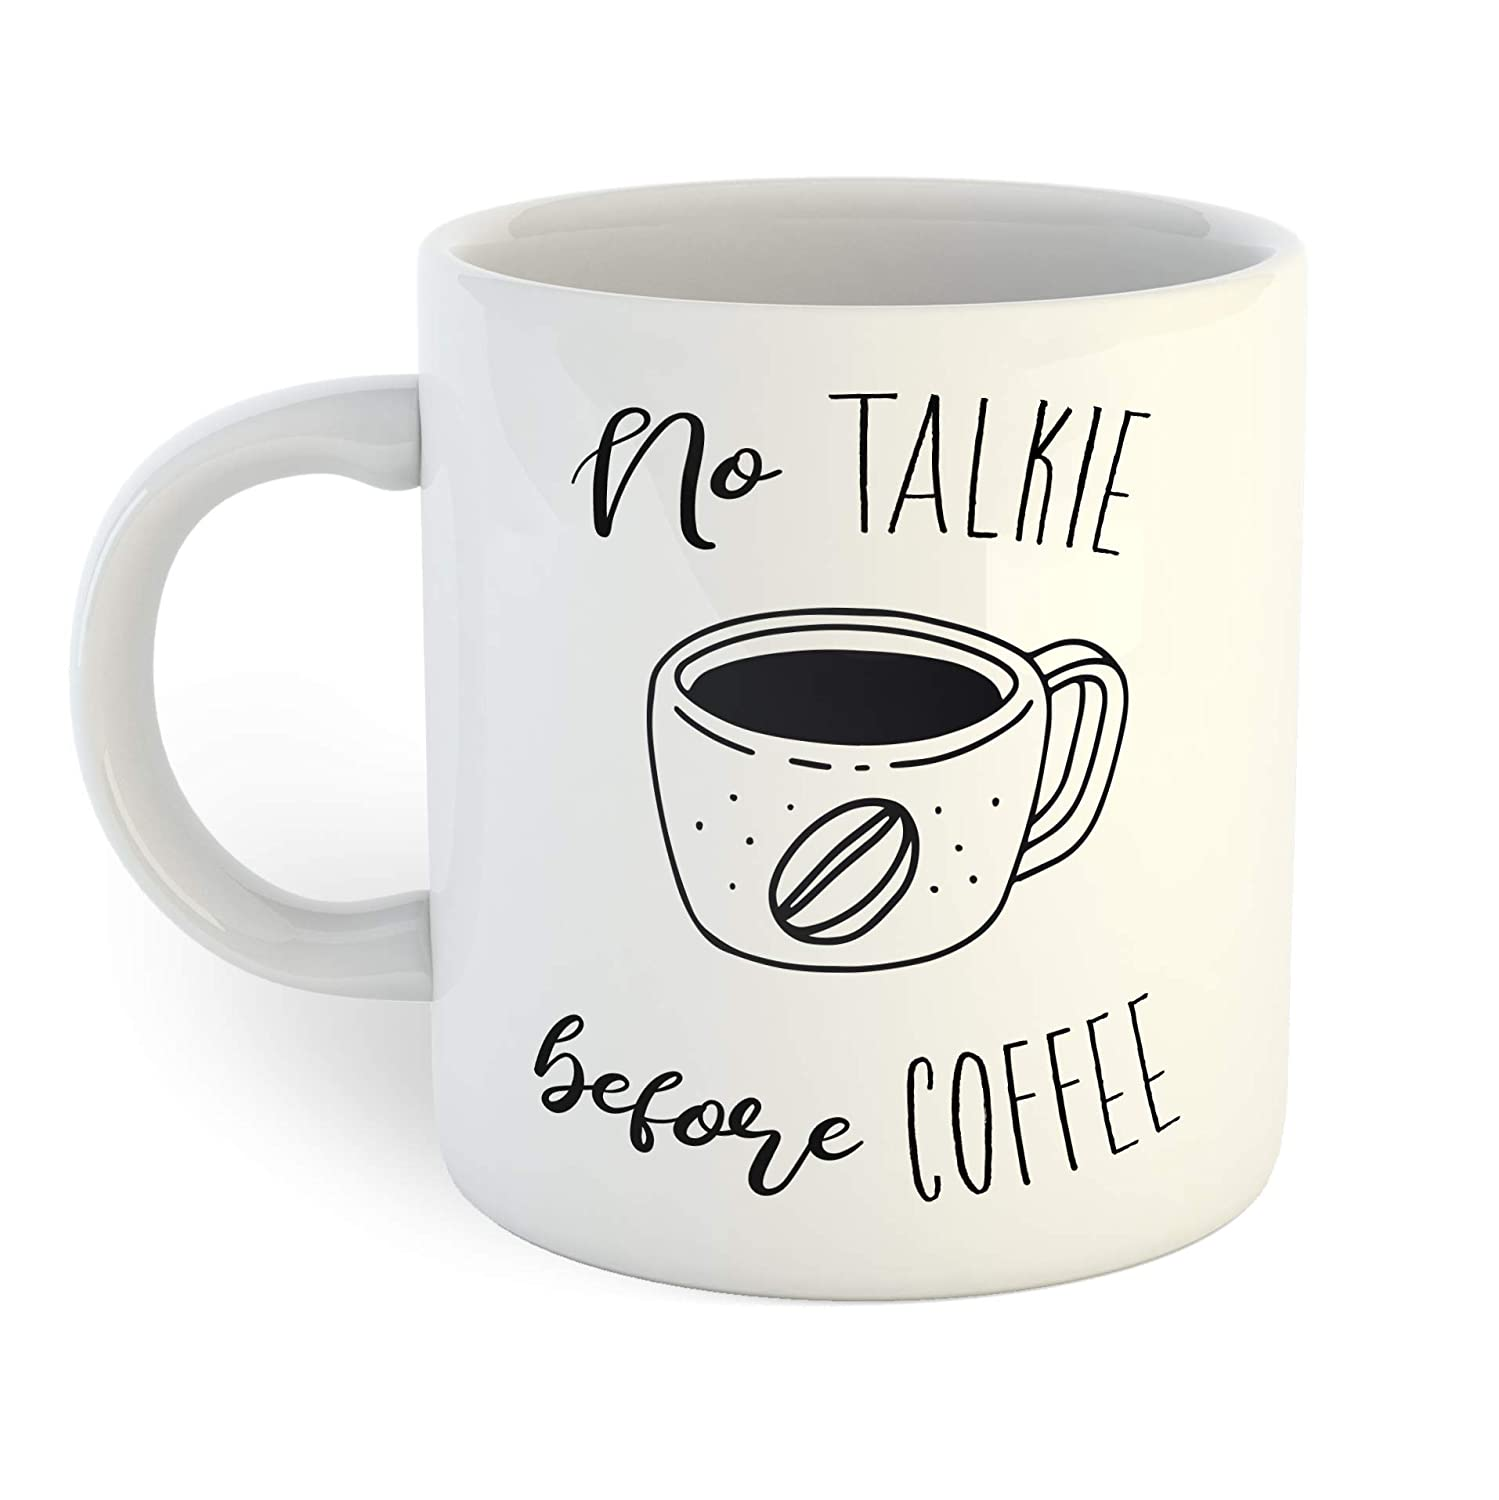 No Talkie Before Mug Coffee Fixed Max 71% OFF price for sale